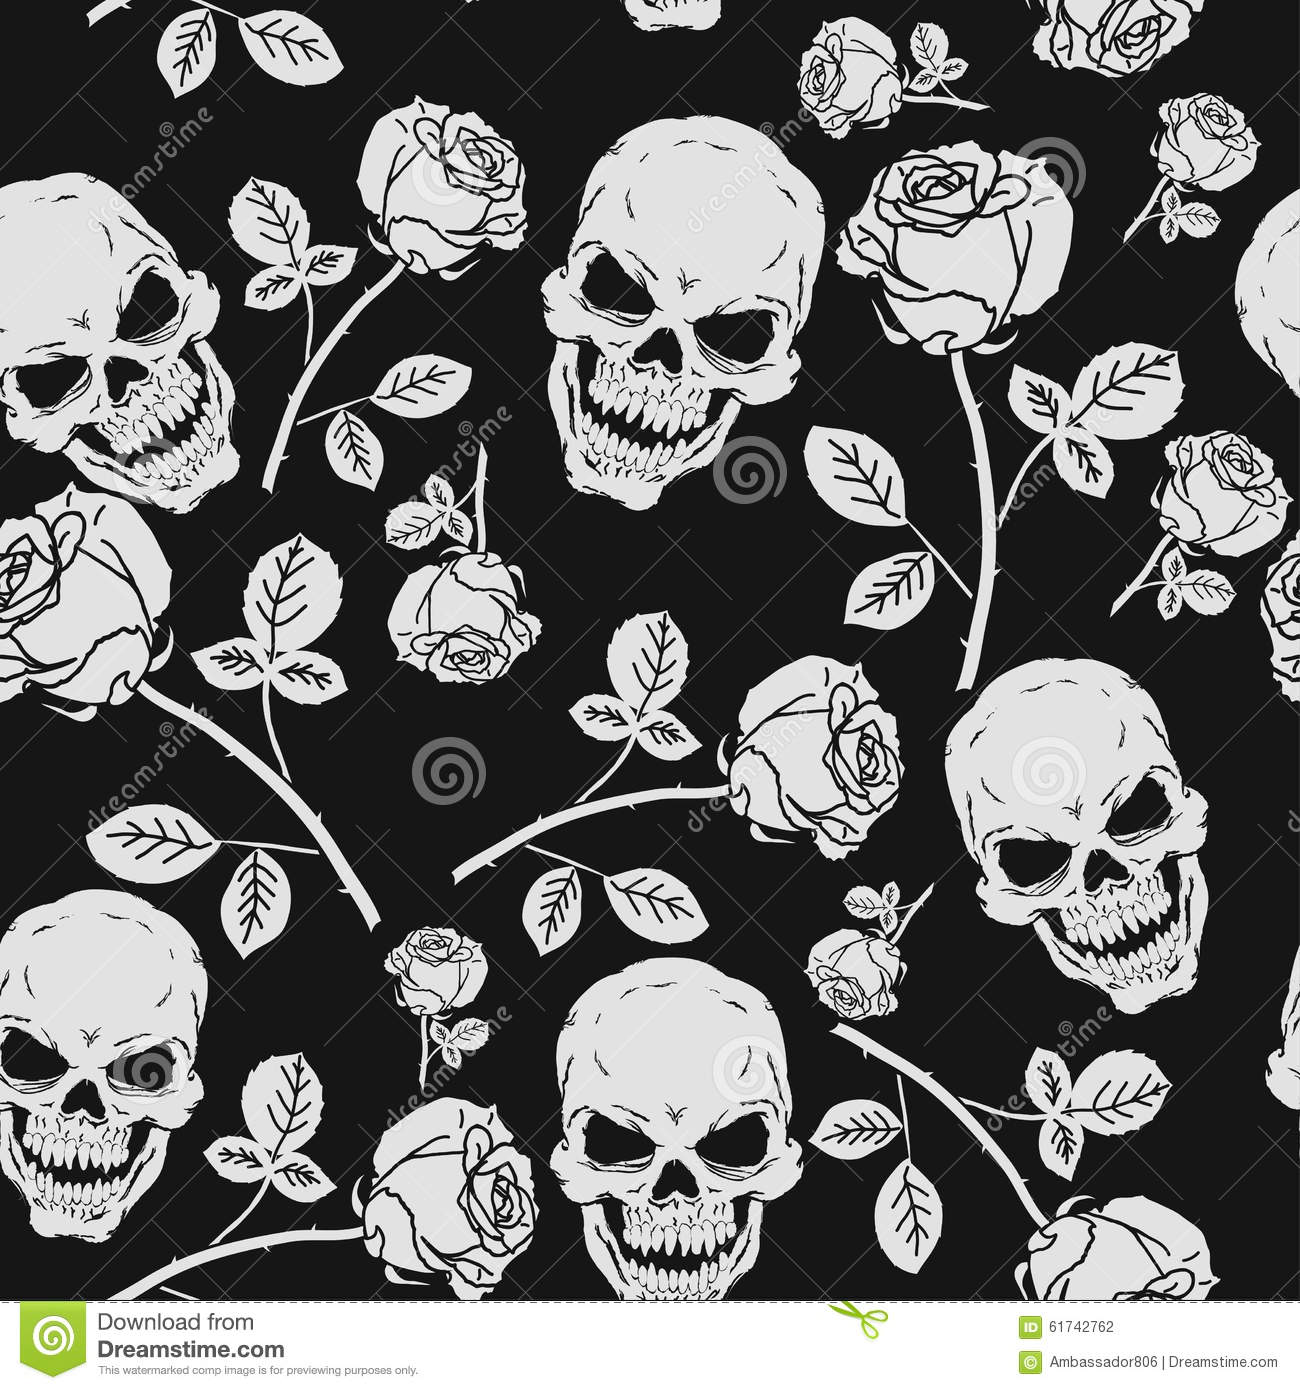 Roses And Skulls Seamless Pattern Stock Vector Illustration Of